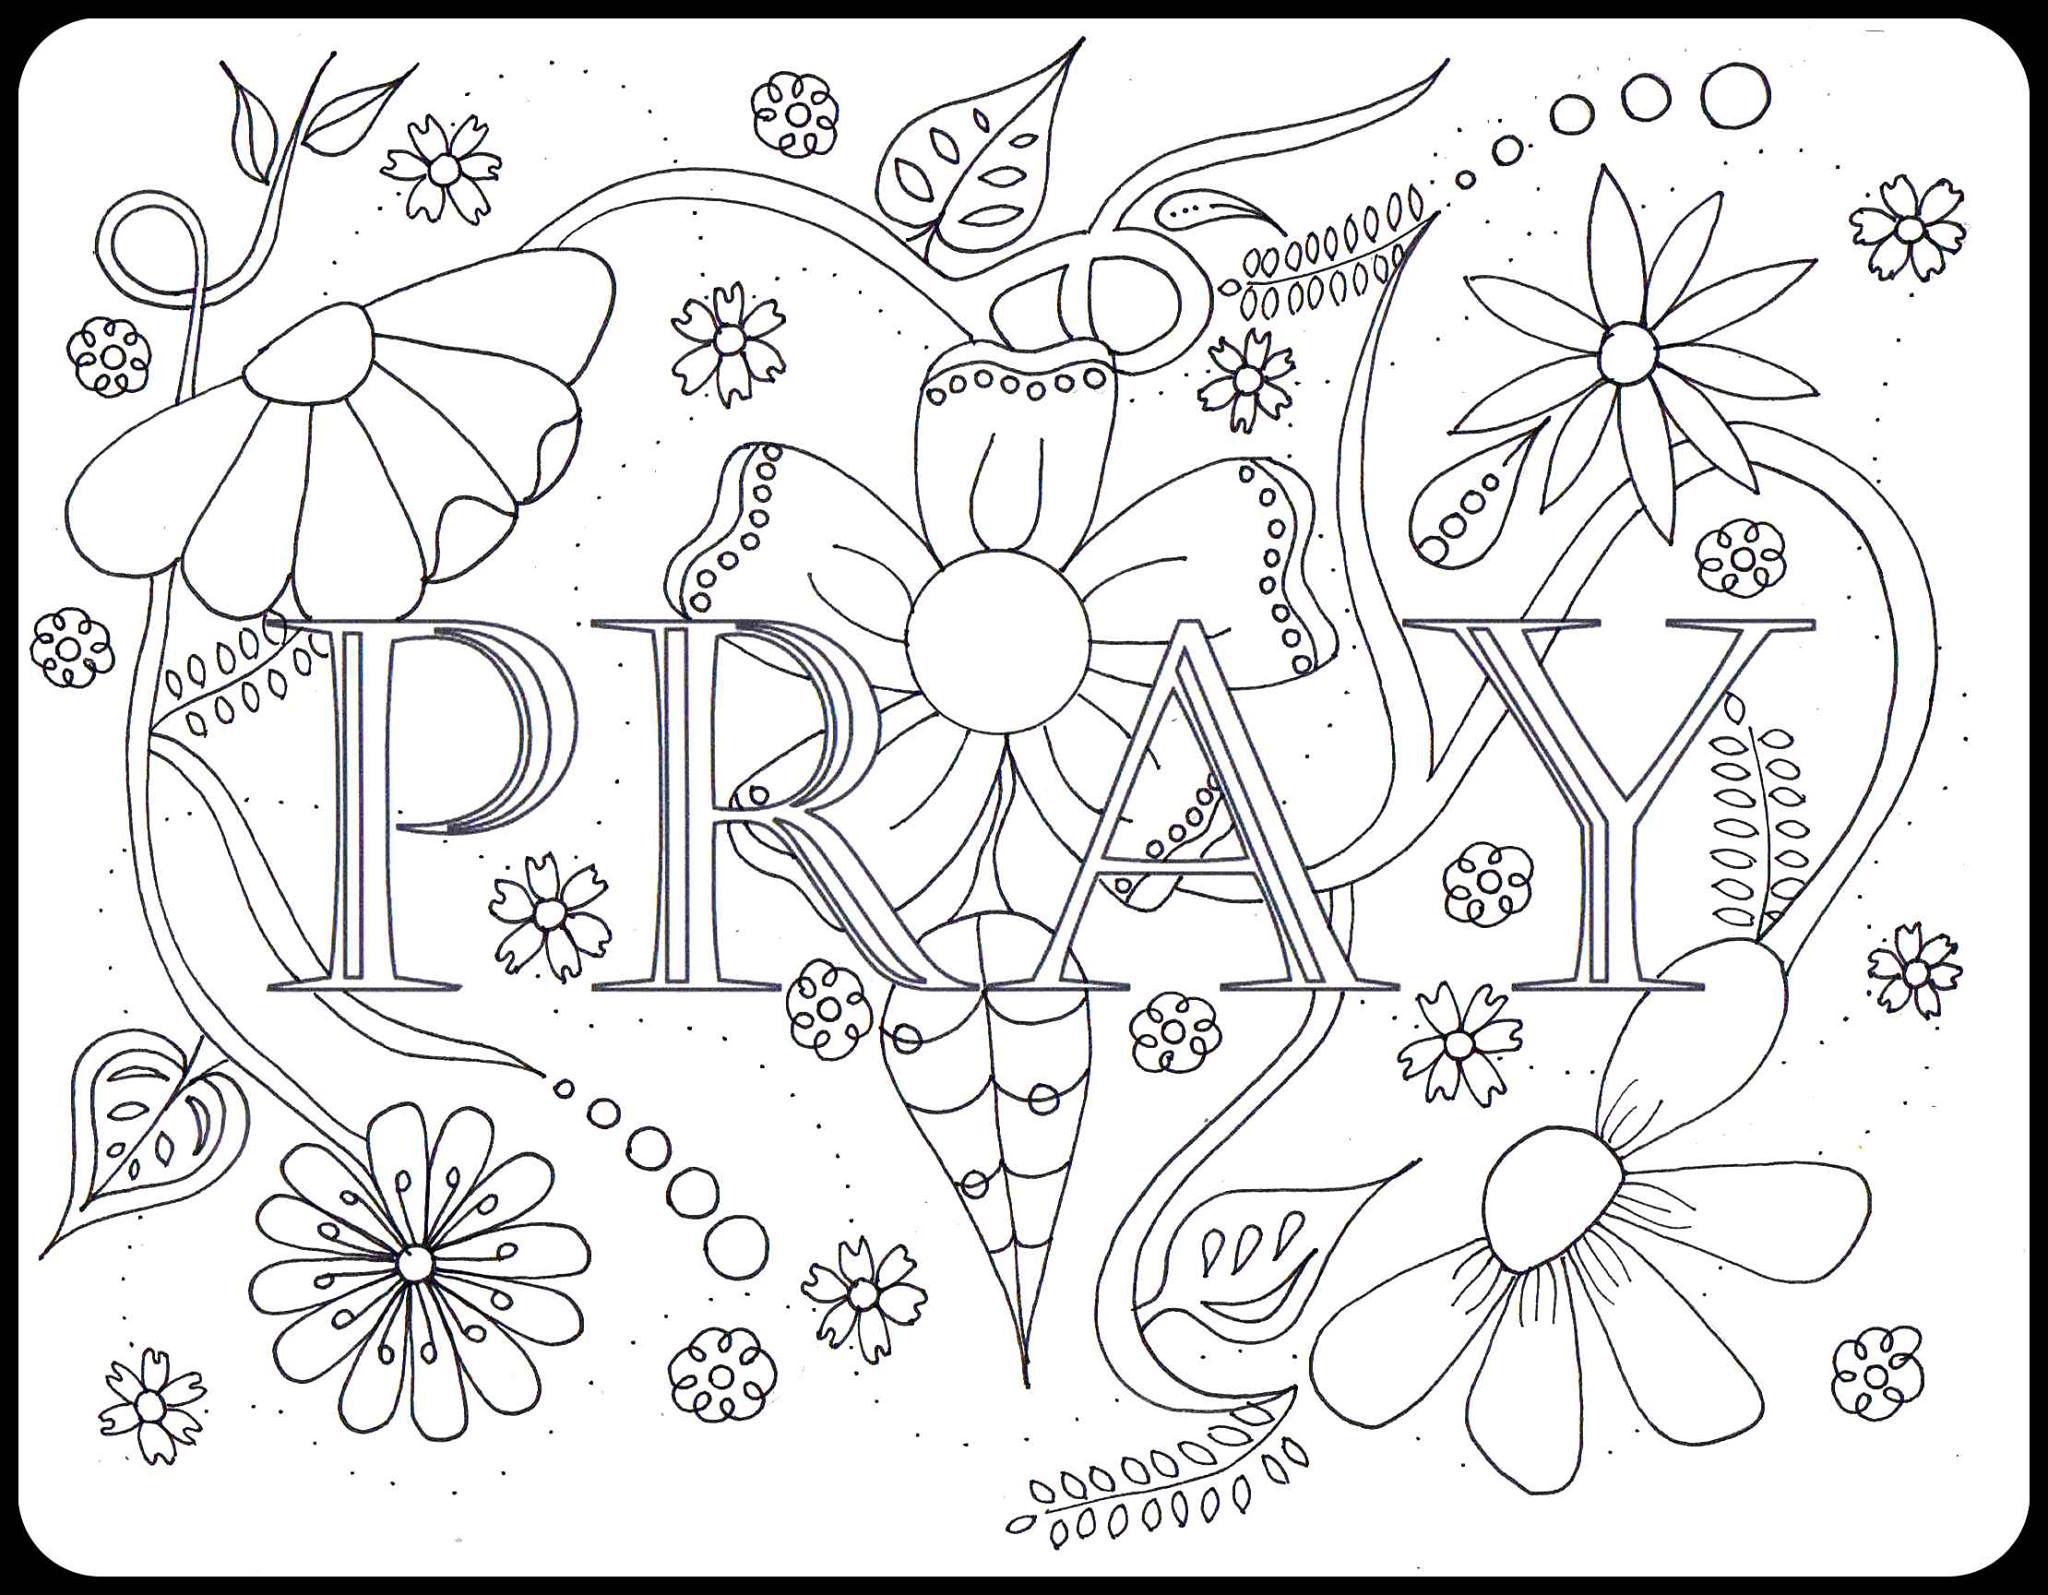 The coloring book project 2nd edition - Pray Coloring Page